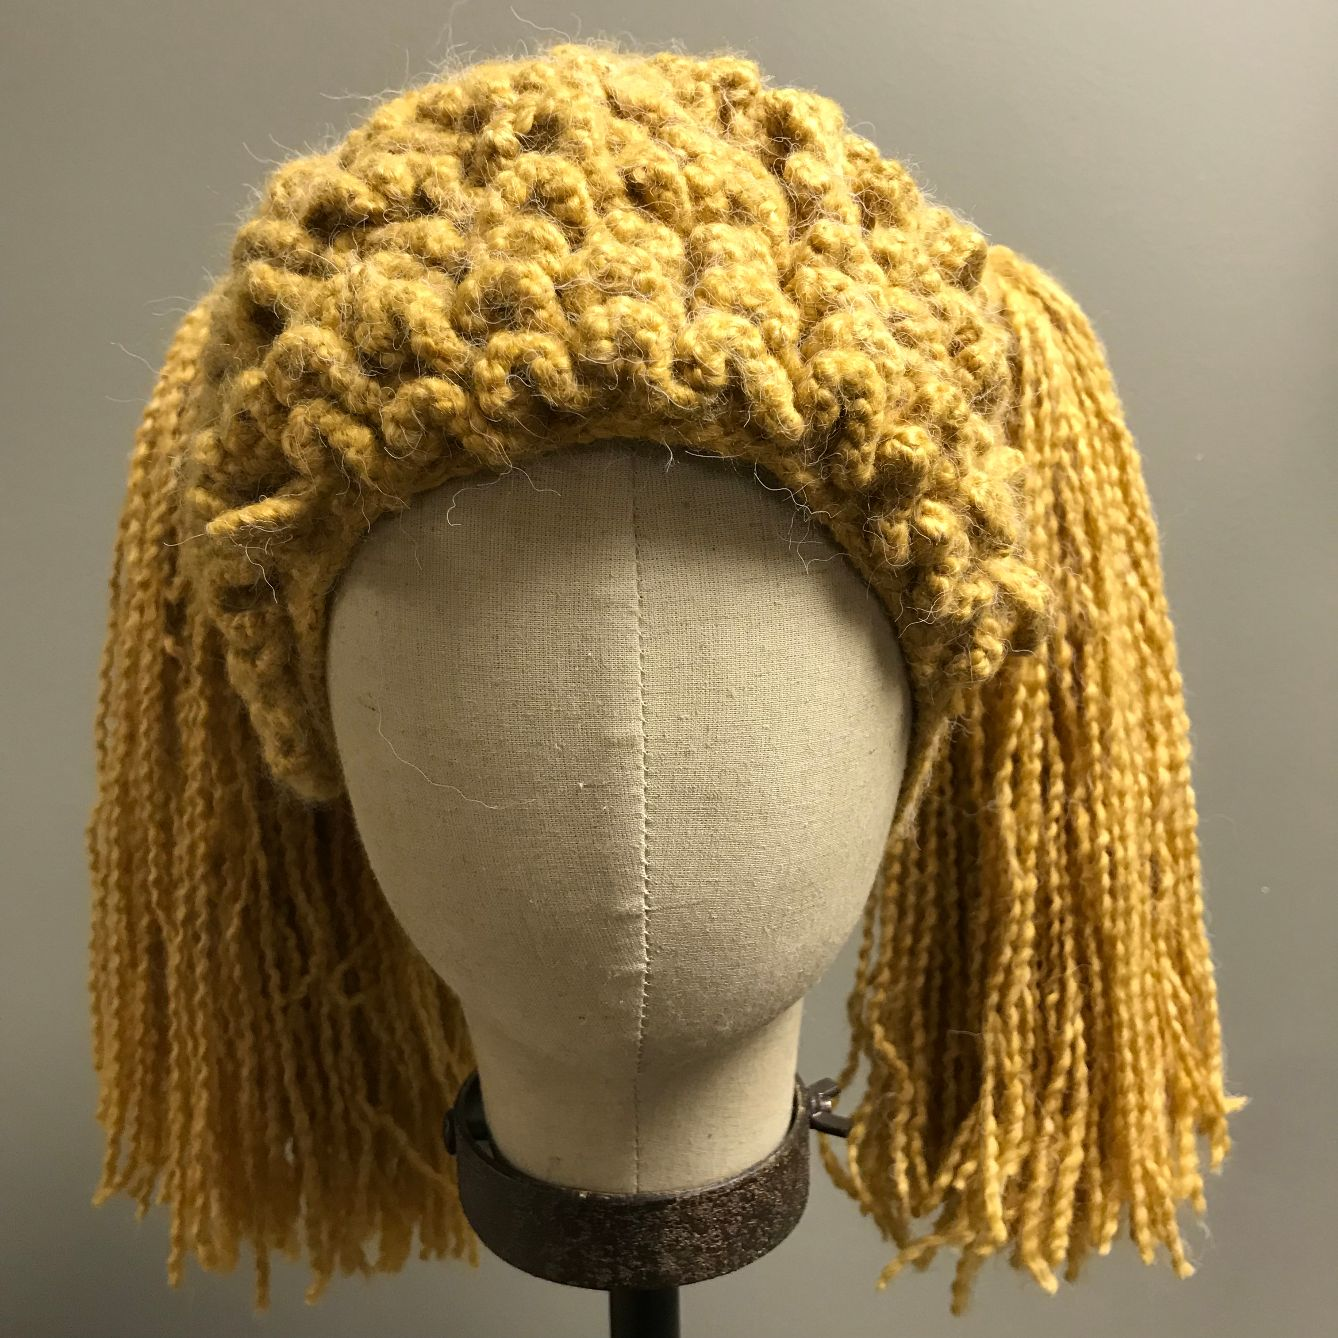 Pig Tail Hat $36